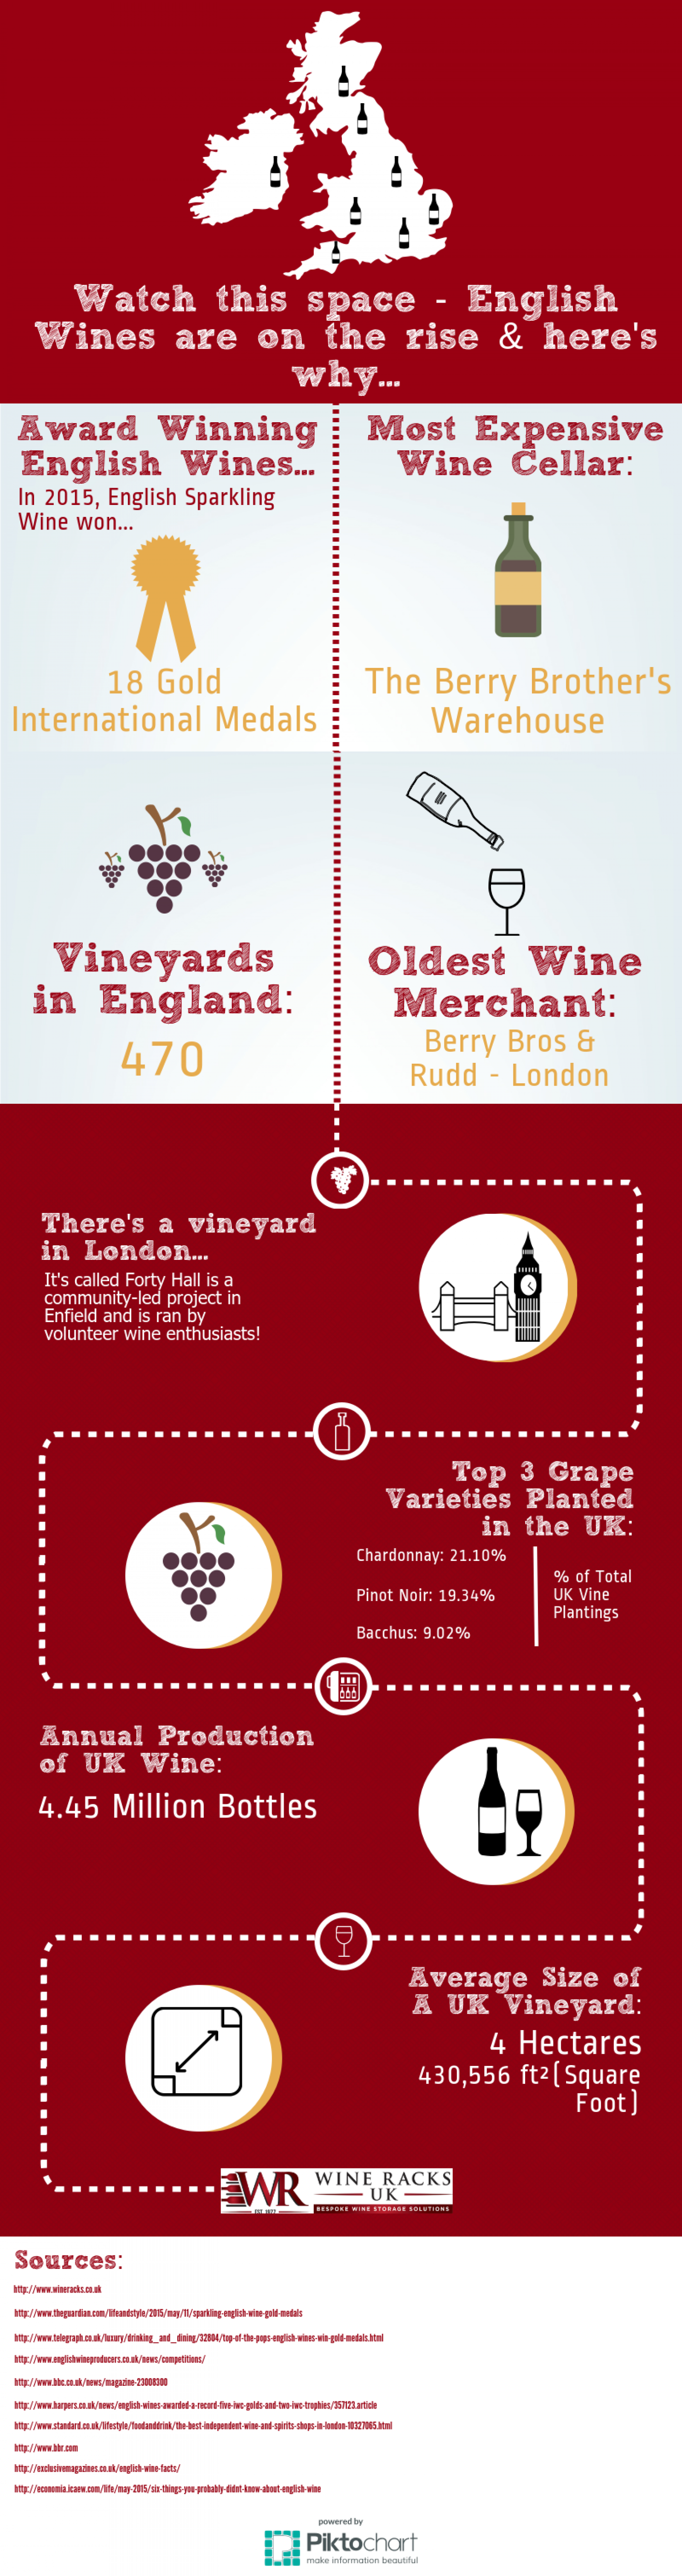 Watch this space - English Wines are on the rise & here's why... Infographic